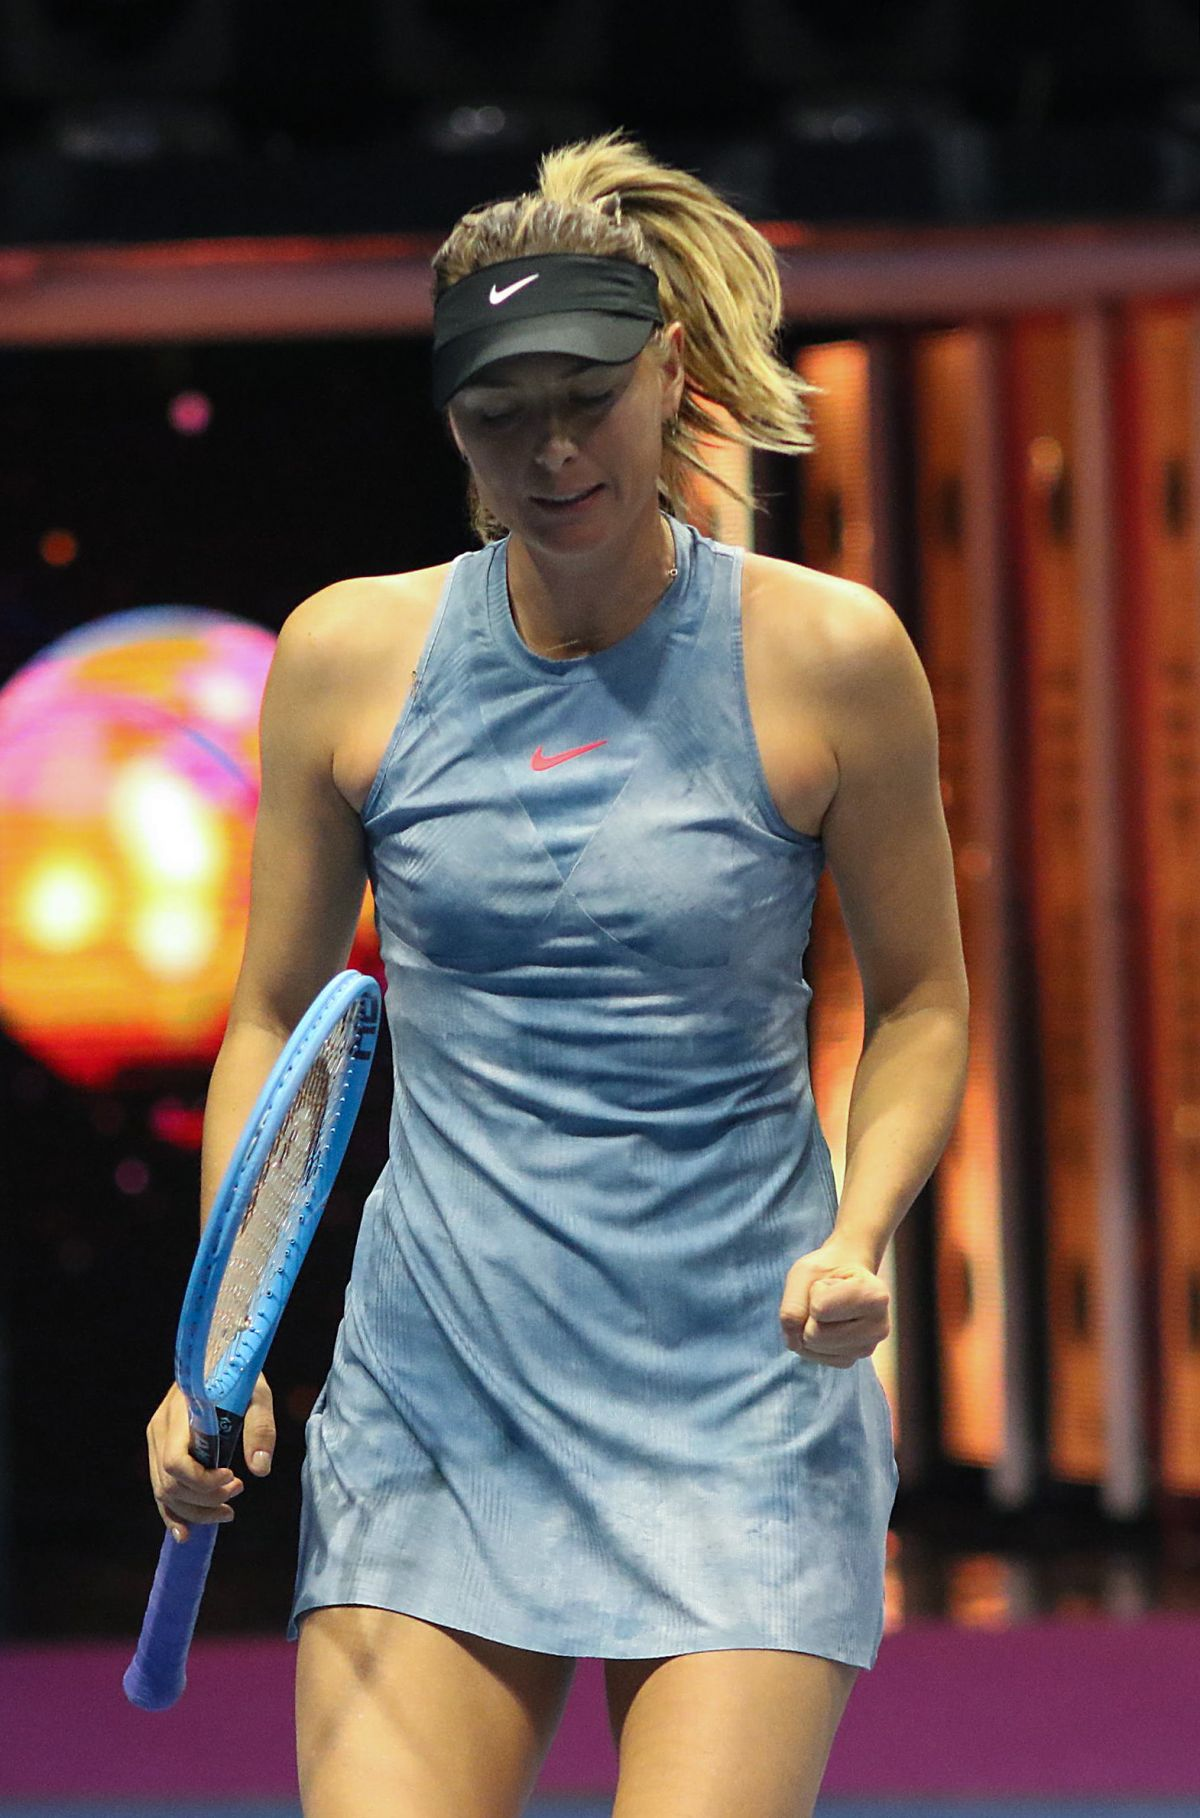 MARIA SHARAPOVA at WTA St. Petersburg Ladies Trophy 01/28 ...